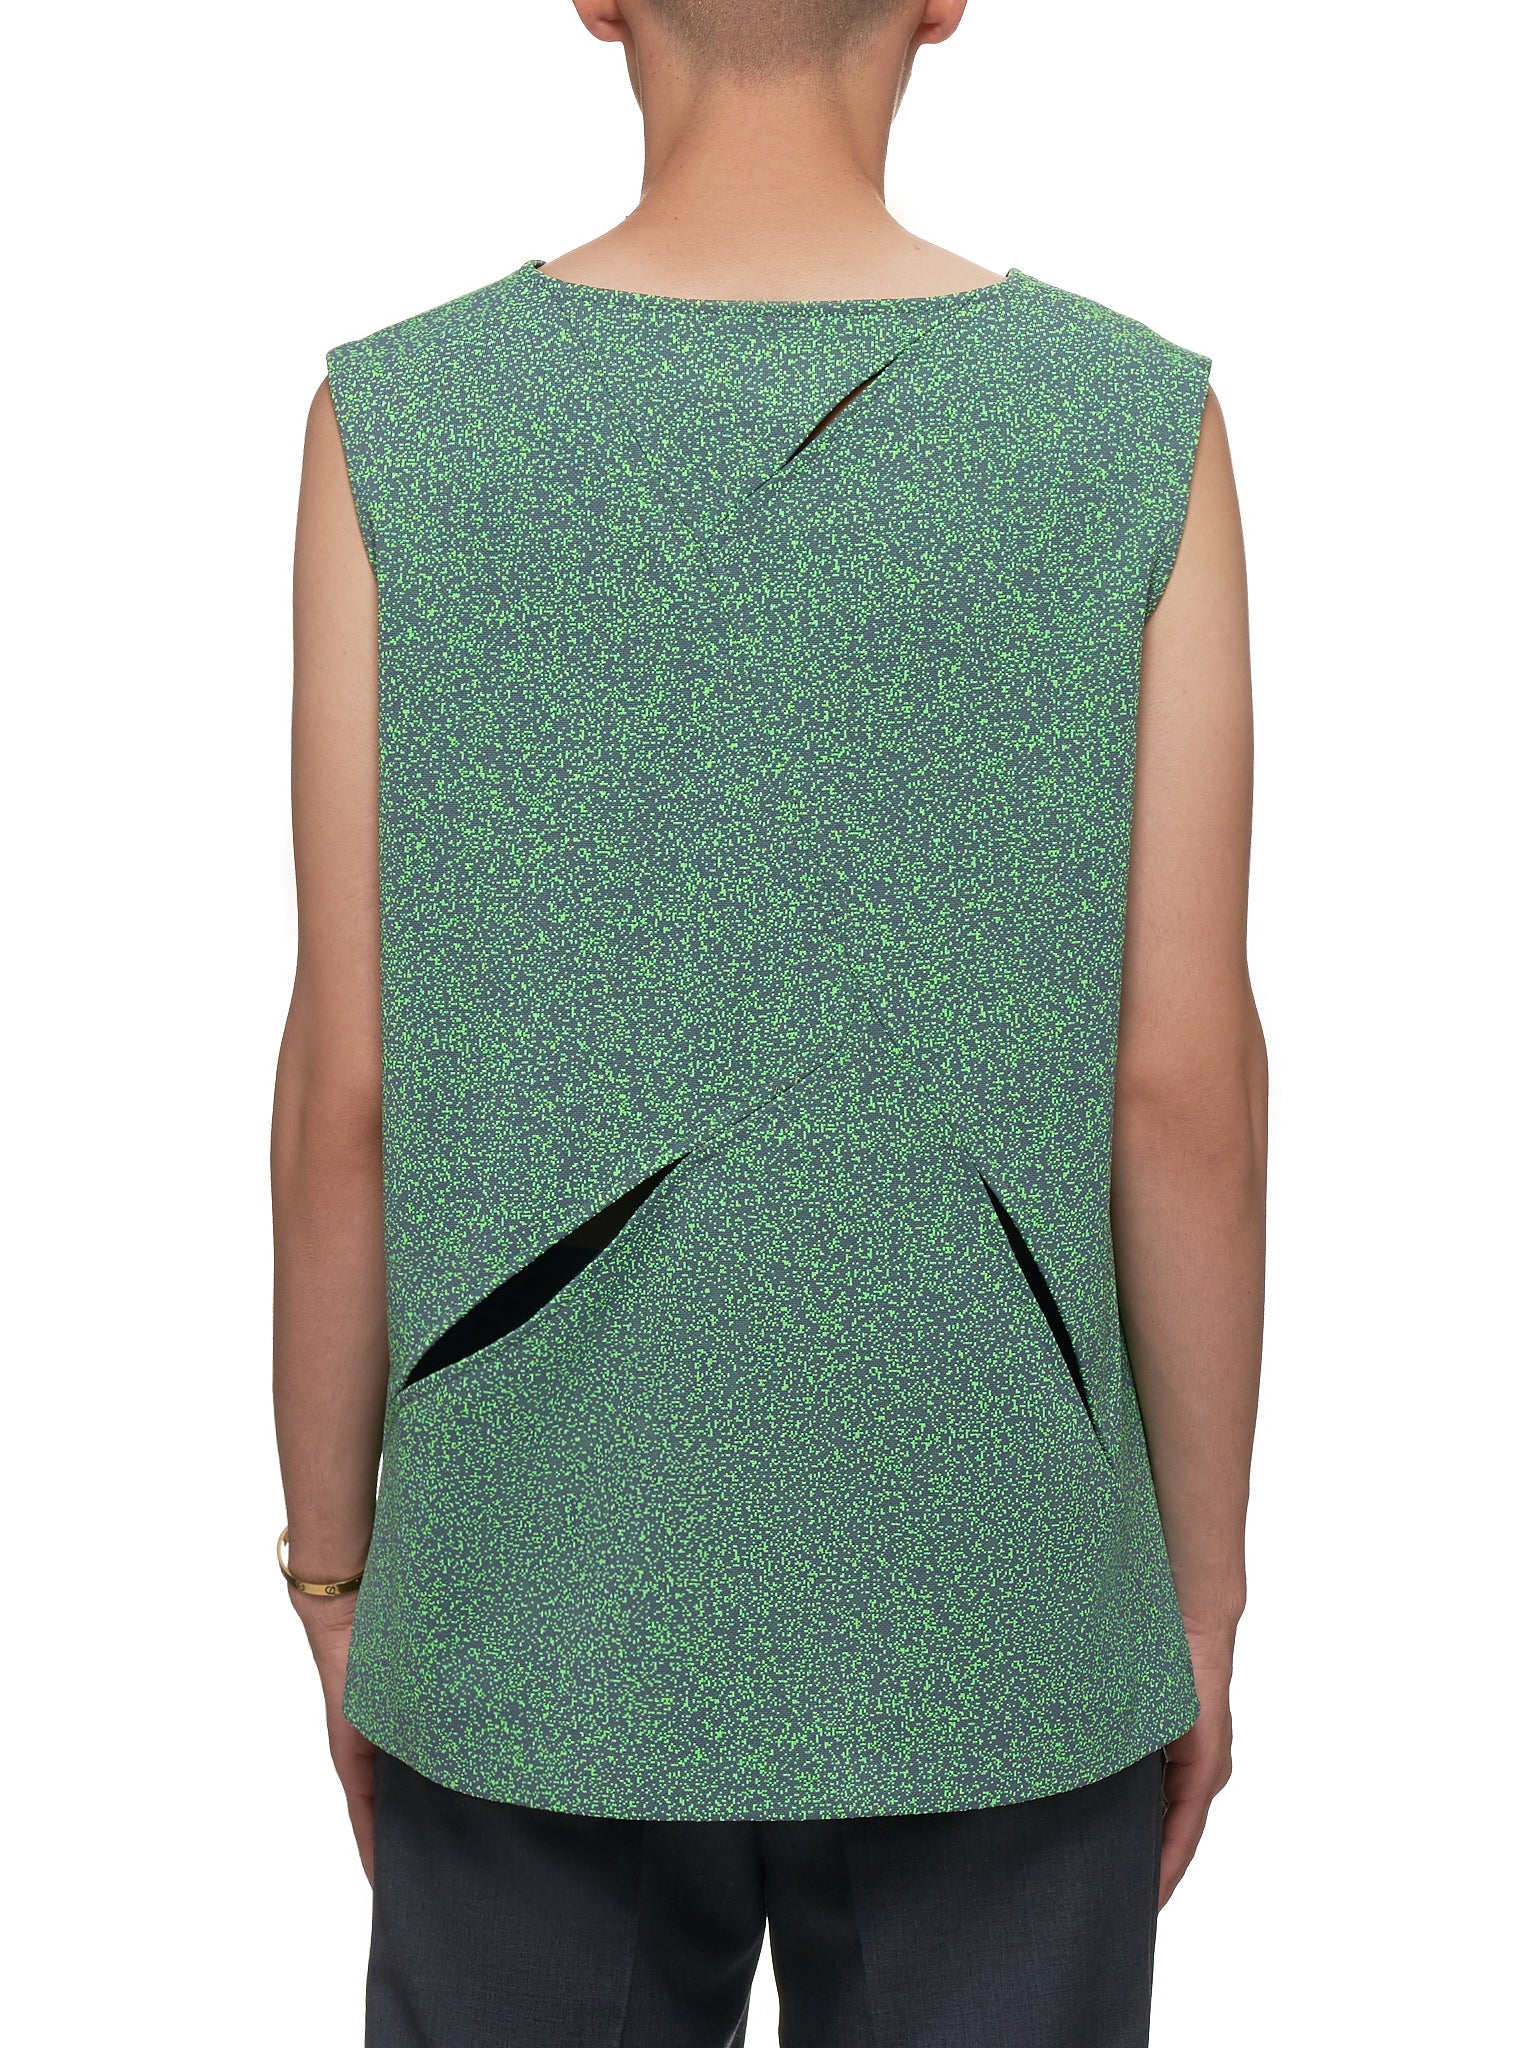 Tasebar Vest (0601-N5001-GREY-GREEN)